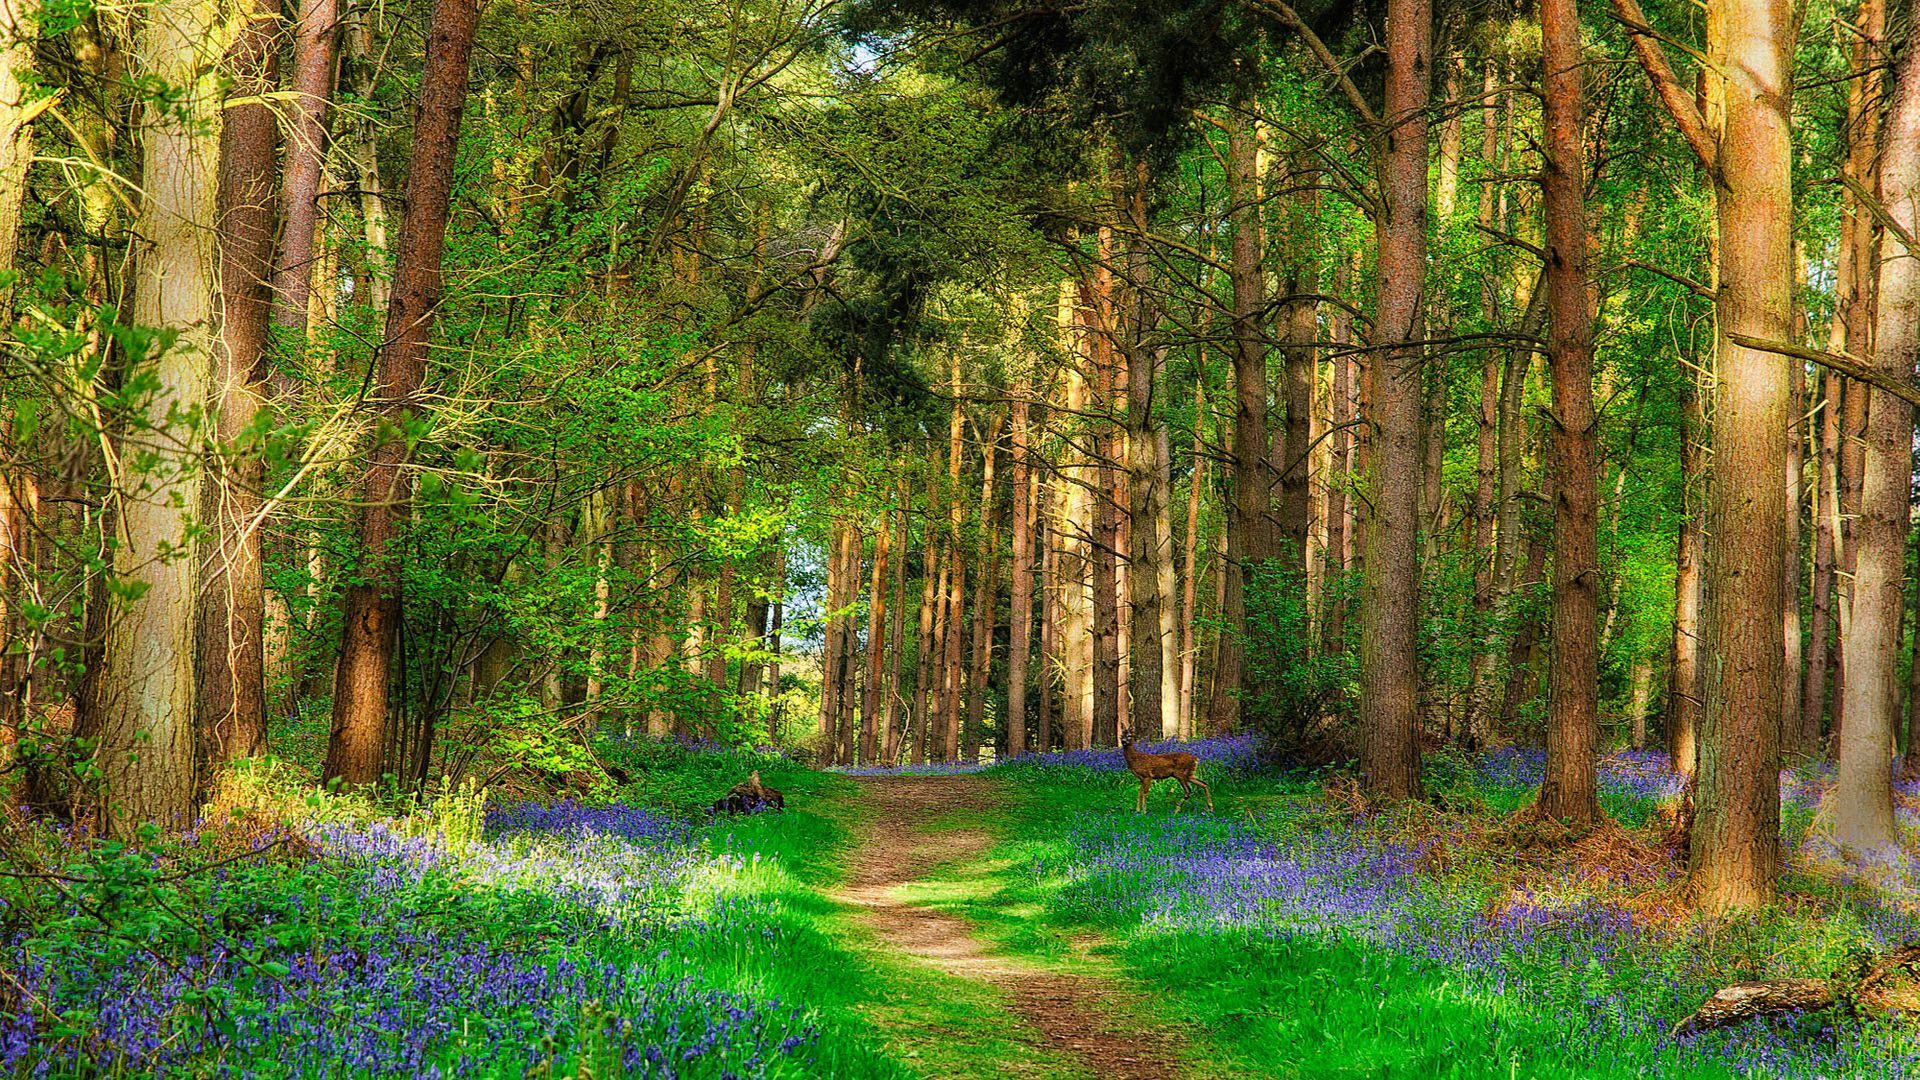 Deer And Forest Beautiful Spring Nature Wallpaper Spring Forest Nature Wallpaper Beautiful Forest